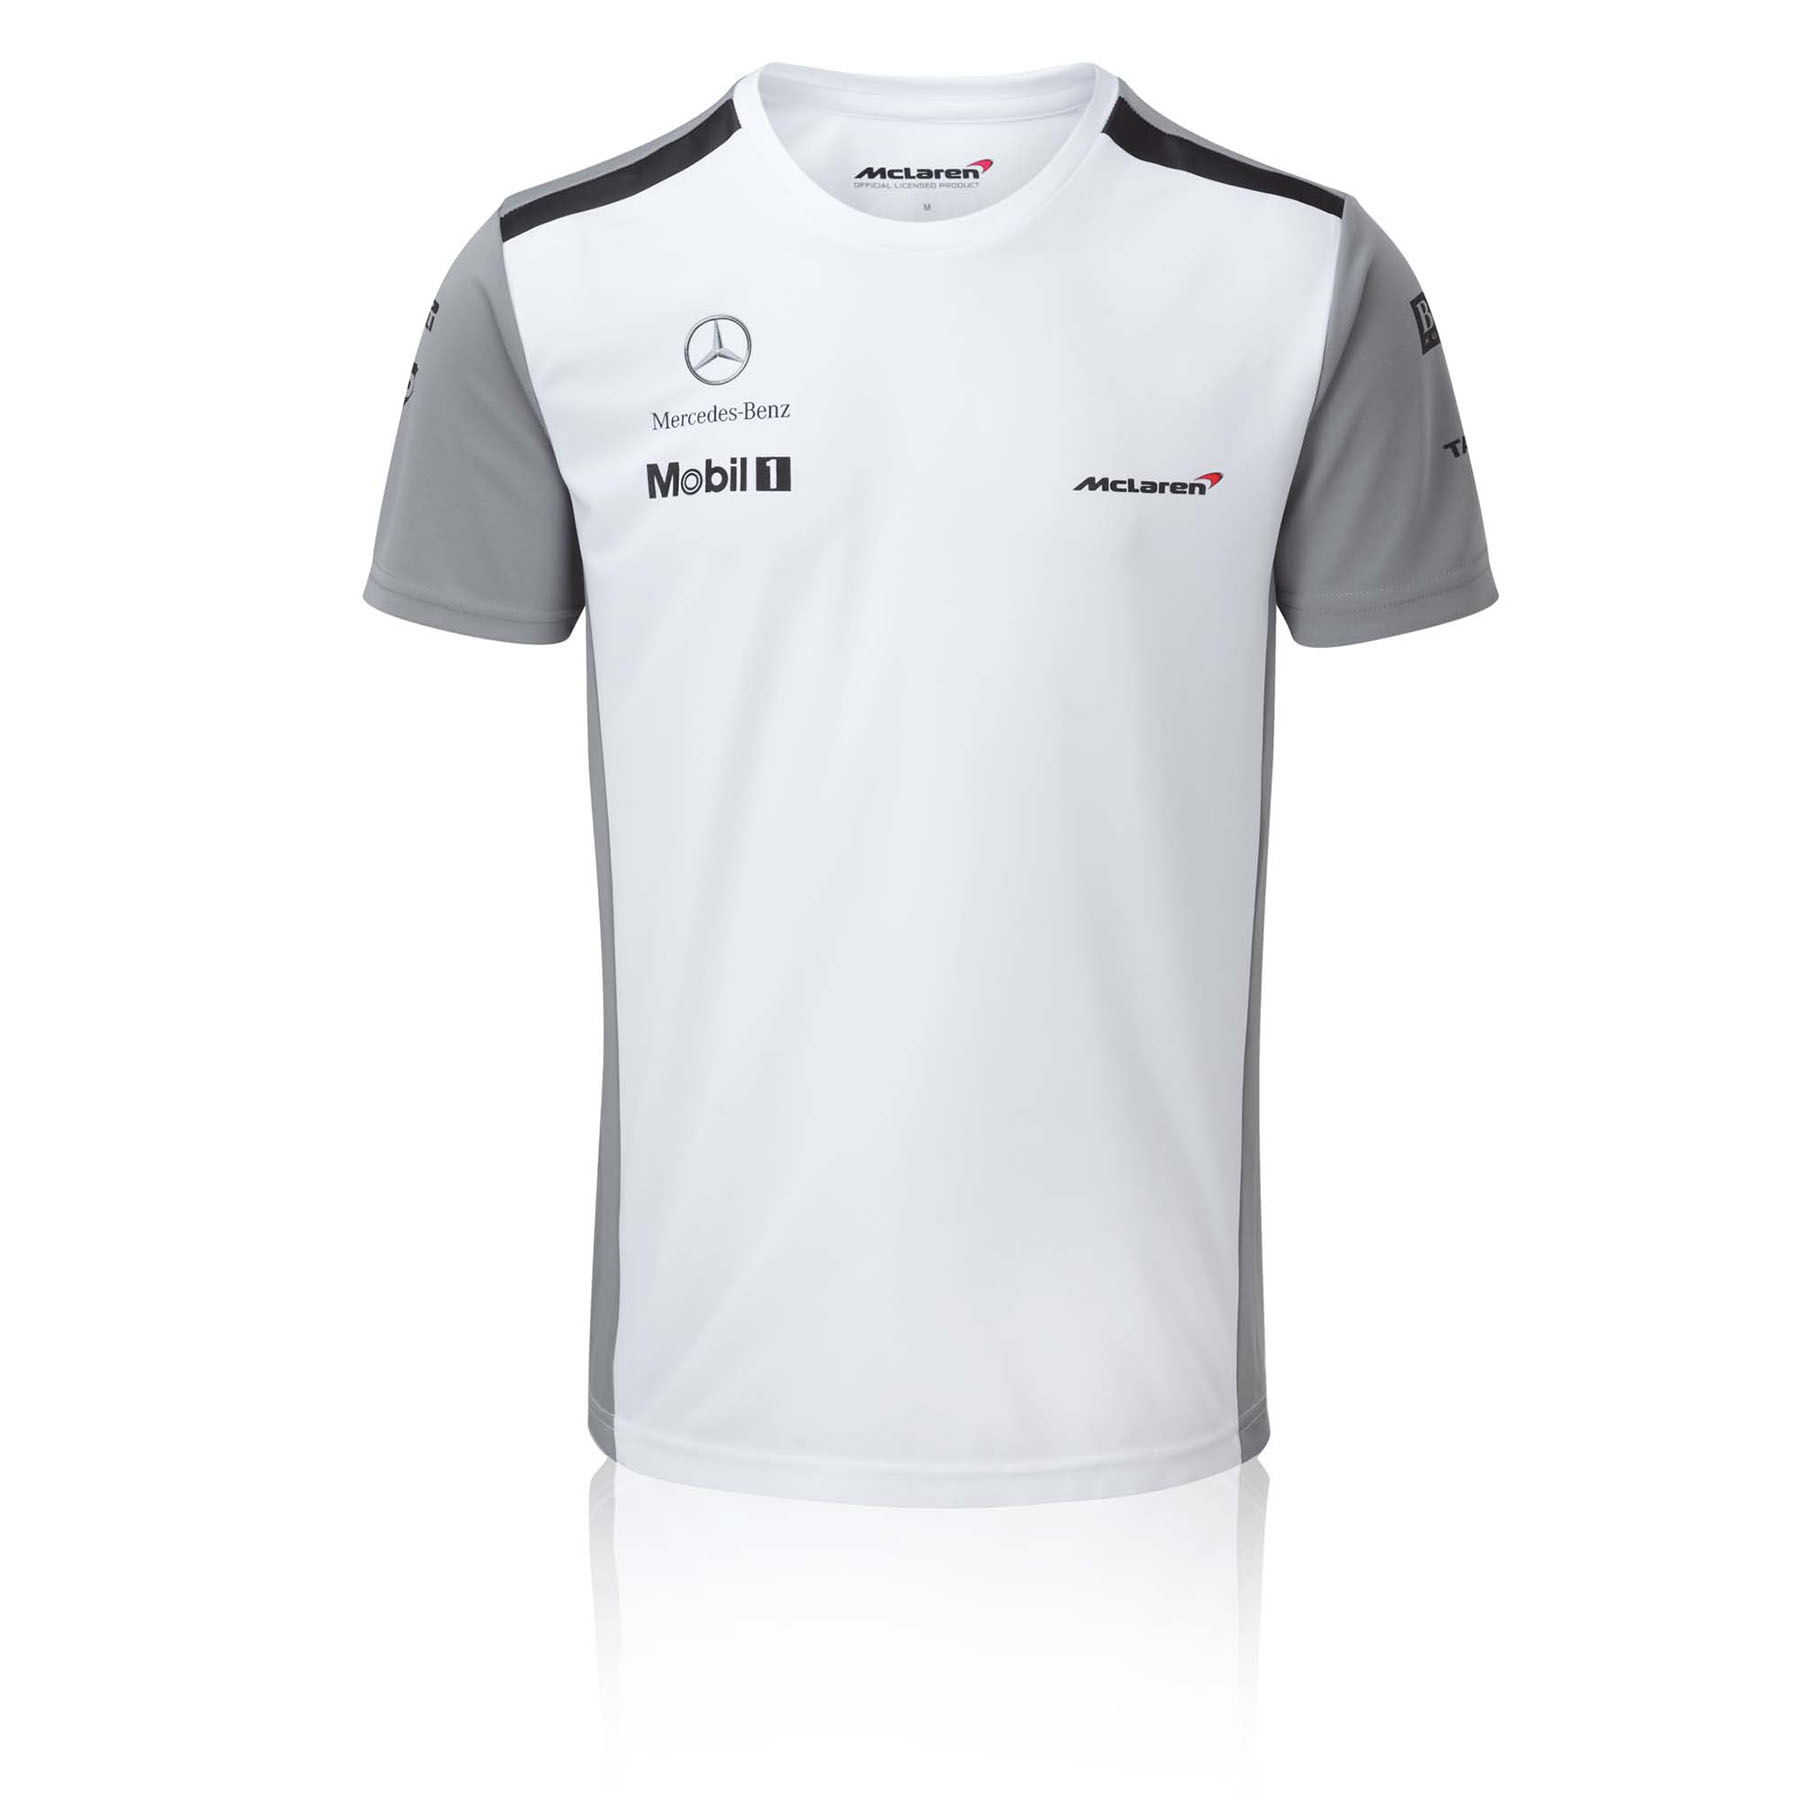 McLaren Mercedes 2014 Technical Team T-Shirt